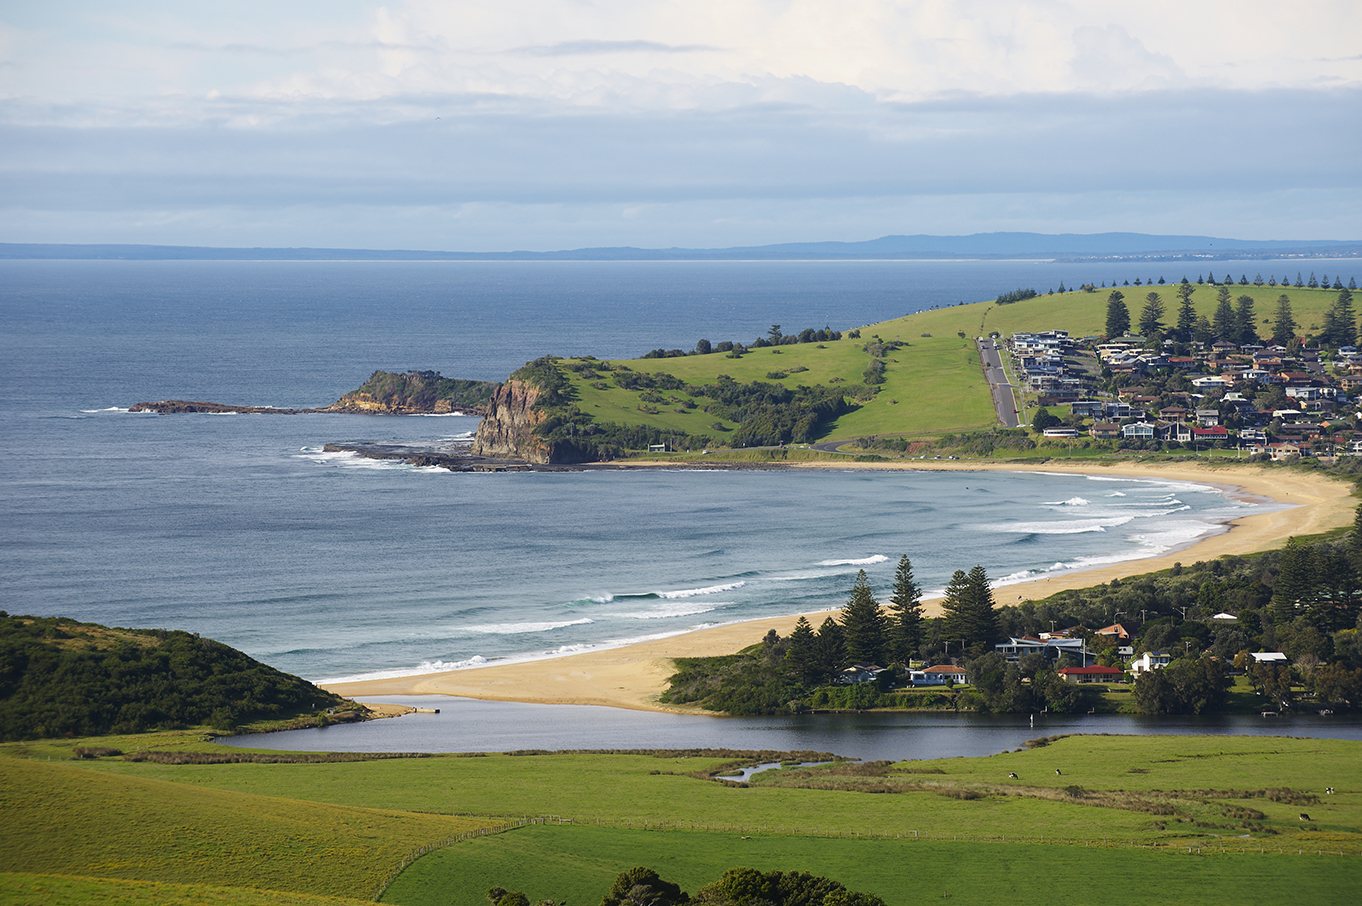 View over paddocks to the estuary and coast at Gerringong NSW